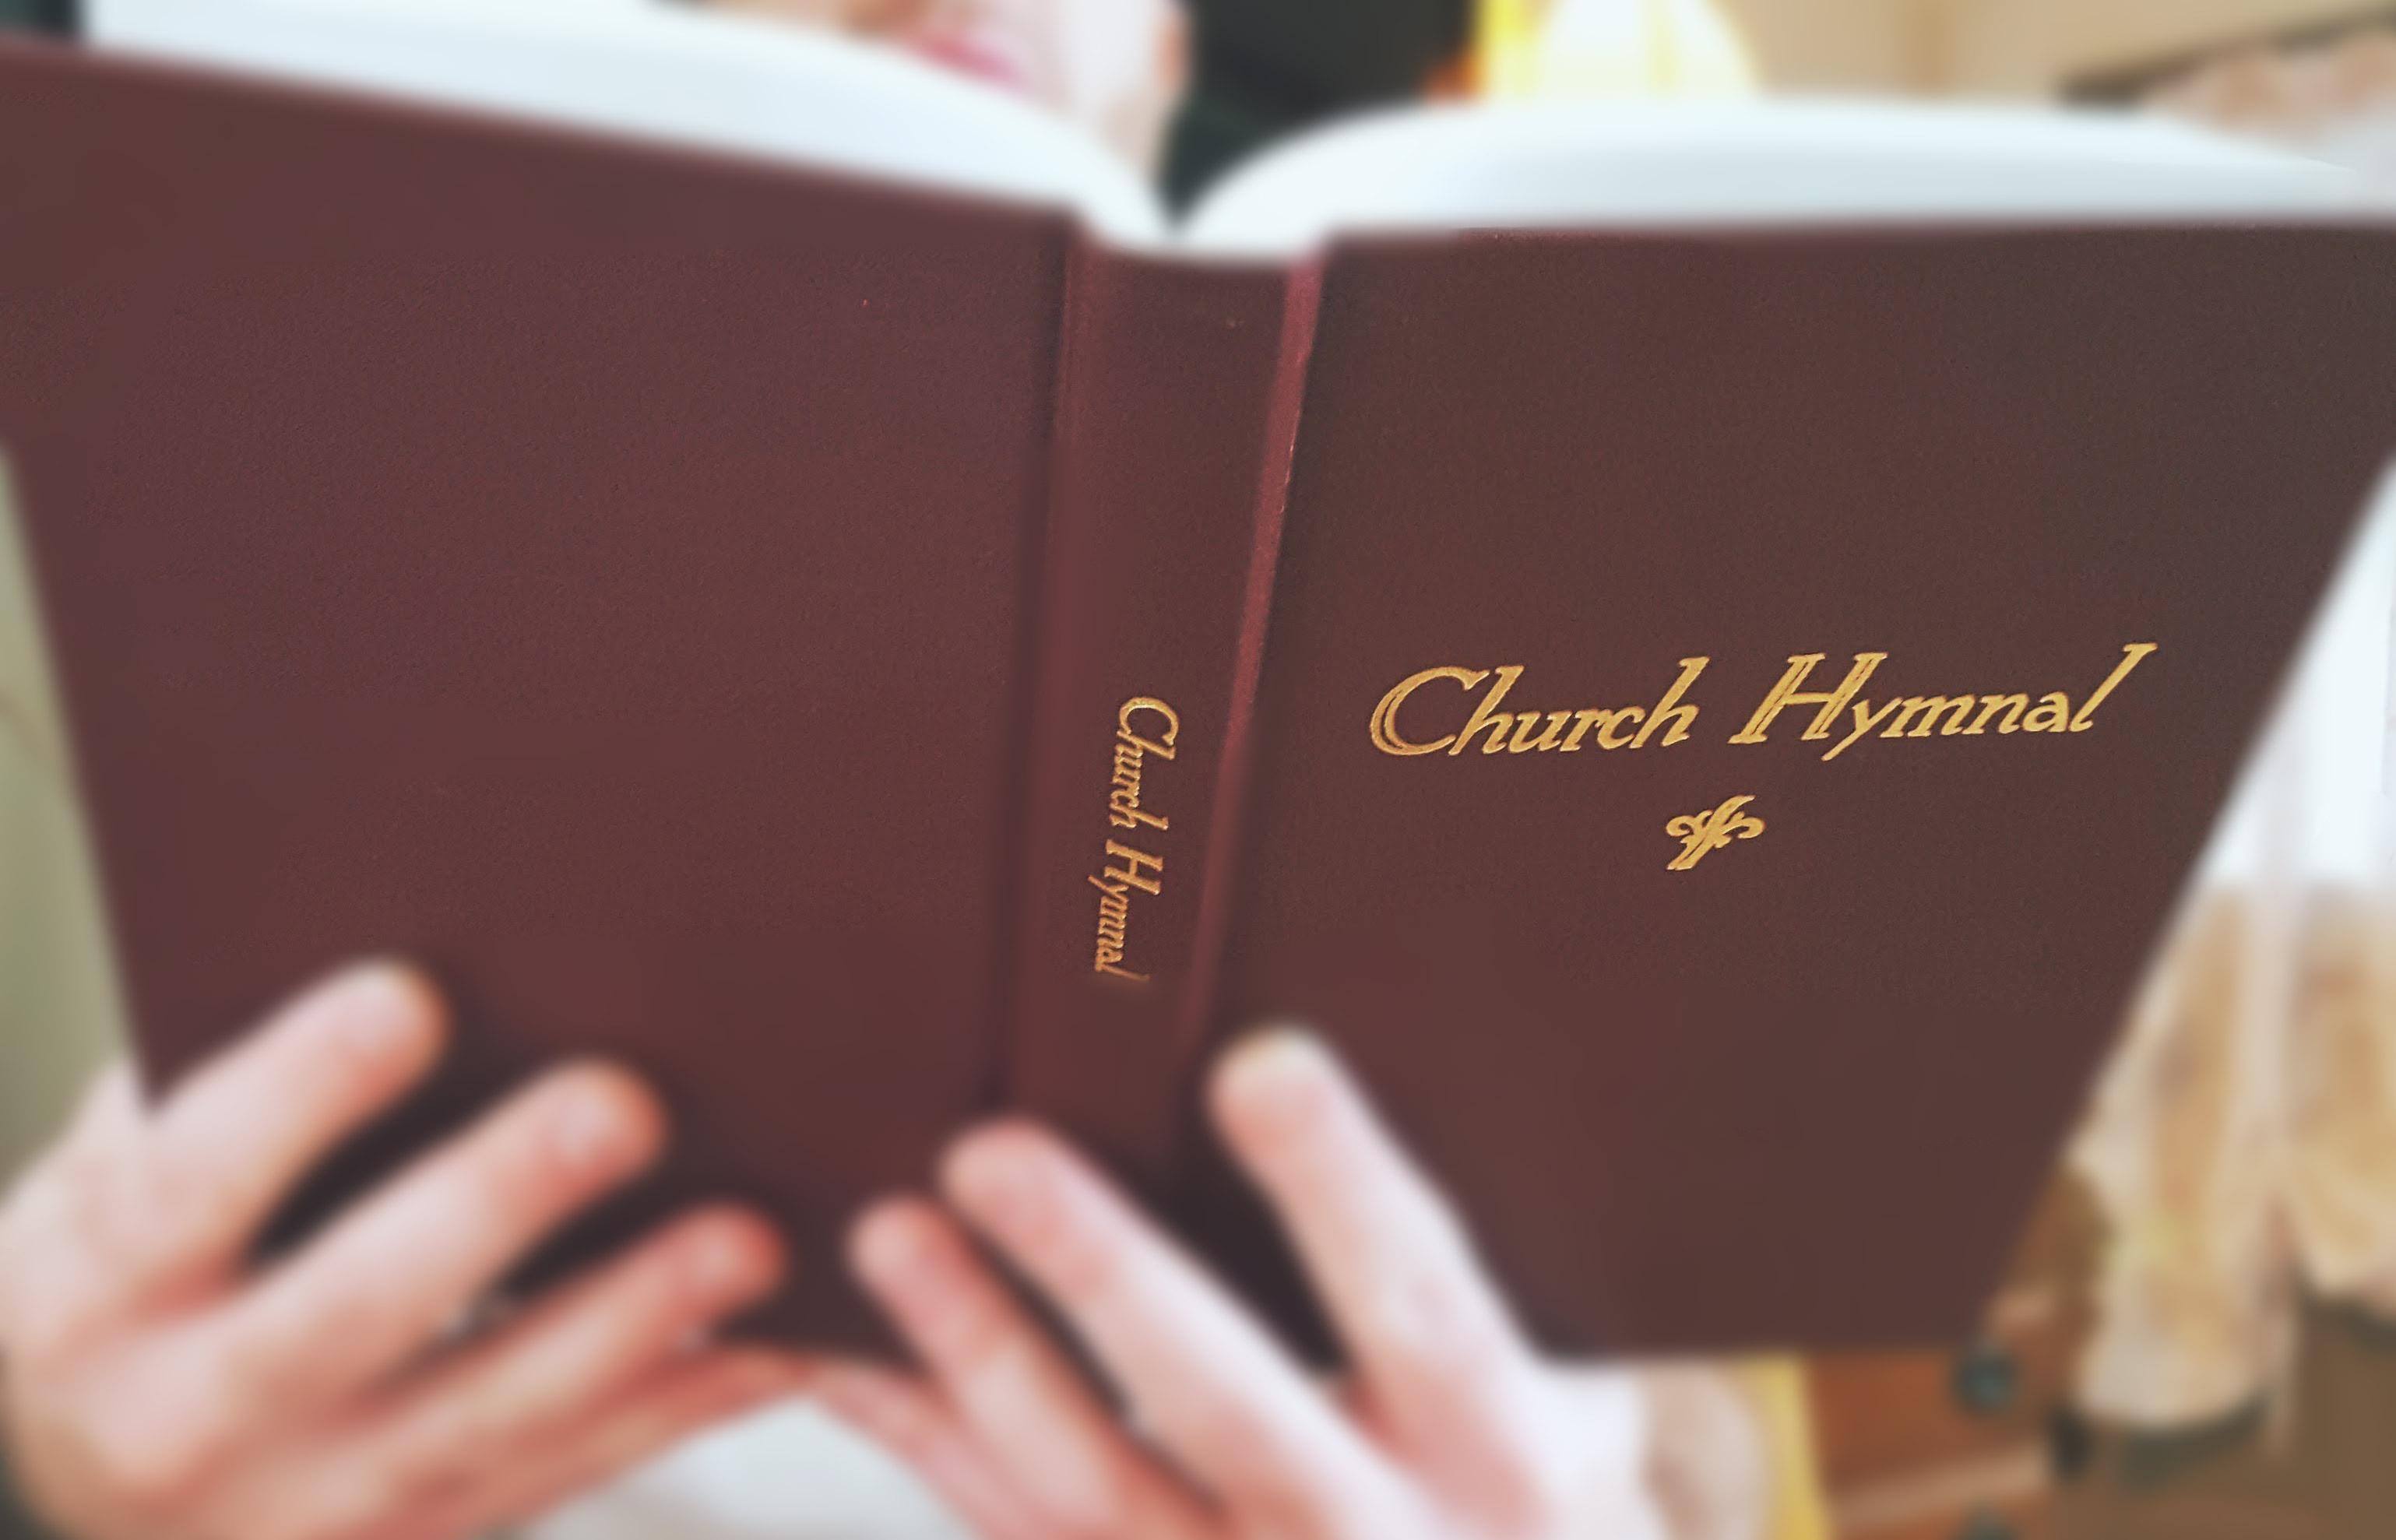 The Red-Back Hymnal